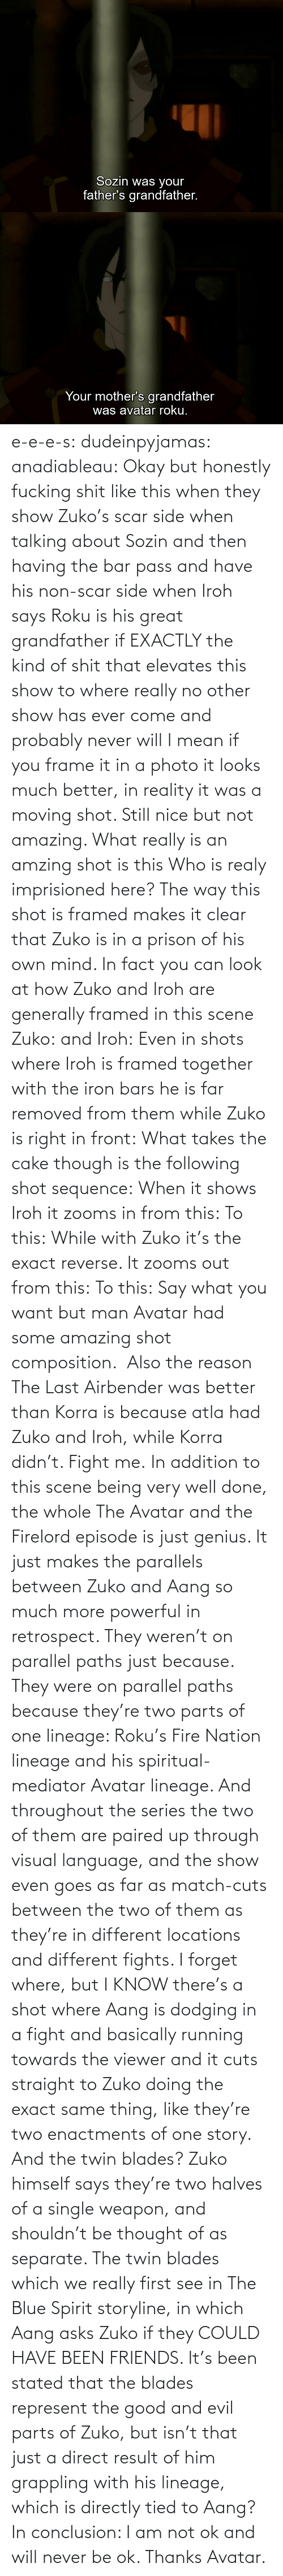 Fire: e-e-e-s: dudeinpyjamas:   anadiableau: Okay but honestly fucking shit like this when they show Zuko's scar side when talking about Sozin and then having the bar pass and have his non-scar side when Iroh says Roku is his great grandfather if EXACTLY the kind of shit that elevates this show to where really no other show has ever come and probably never will I mean if you frame it in a photo it looks much better, in reality it was a moving shot. Still nice but not amazing. What really is an amzing shot is this Who is realy imprisioned here? The way this shot is framed makes it clear that Zuko is in a prison of his own mind. In fact you can look at how Zuko and Iroh are generally framed in this scene Zuko: and Iroh: Even in shots where Iroh is framed together with the iron bars he is far removed from them while Zuko is right in front:  What takes the cake though is the following shot sequence: When it shows Iroh it zooms in from this: To this: While with Zuko it's the exact reverse. It zooms out from this: To this: Say what you want but man Avatar had some amazing shot composition.   Also the reason The Last Airbender was better than Korra is because atla had Zuko and Iroh, while Korra didn't. Fight me.    In addition to this scene being very well done, the whole The Avatar and the Firelord episode is just genius.  It just makes the parallels between Zuko and Aang so much more powerful in retrospect.  They weren't on parallel paths just because.  They were on parallel paths because they're two parts of one lineage: Roku's Fire Nation lineage and his spiritual-mediator Avatar lineage.  And throughout the series the two of them are paired up through visual language, and the show even goes as far as match-cuts between the two of them as they're in different locations and different fights.  I forget where, but I KNOW there's a shot where Aang is dodging in a fight and basically running towards the viewer and it cuts straight to Zuko doing the exact same thing, like they're two enactments of one story.   And the twin blades?  Zuko himself says they're two halves of a single weapon, and shouldn't be thought of as separate.  The twin blades which we really first see in The Blue Spirit storyline, in which Aang asks Zuko if they COULD HAVE BEEN FRIENDS.  It's been stated that the blades represent the good and evil parts of Zuko, but isn't that just a direct result of him grappling with his lineage, which is directly tied to Aang? In conclusion: I am not ok and will never be ok.  Thanks Avatar.